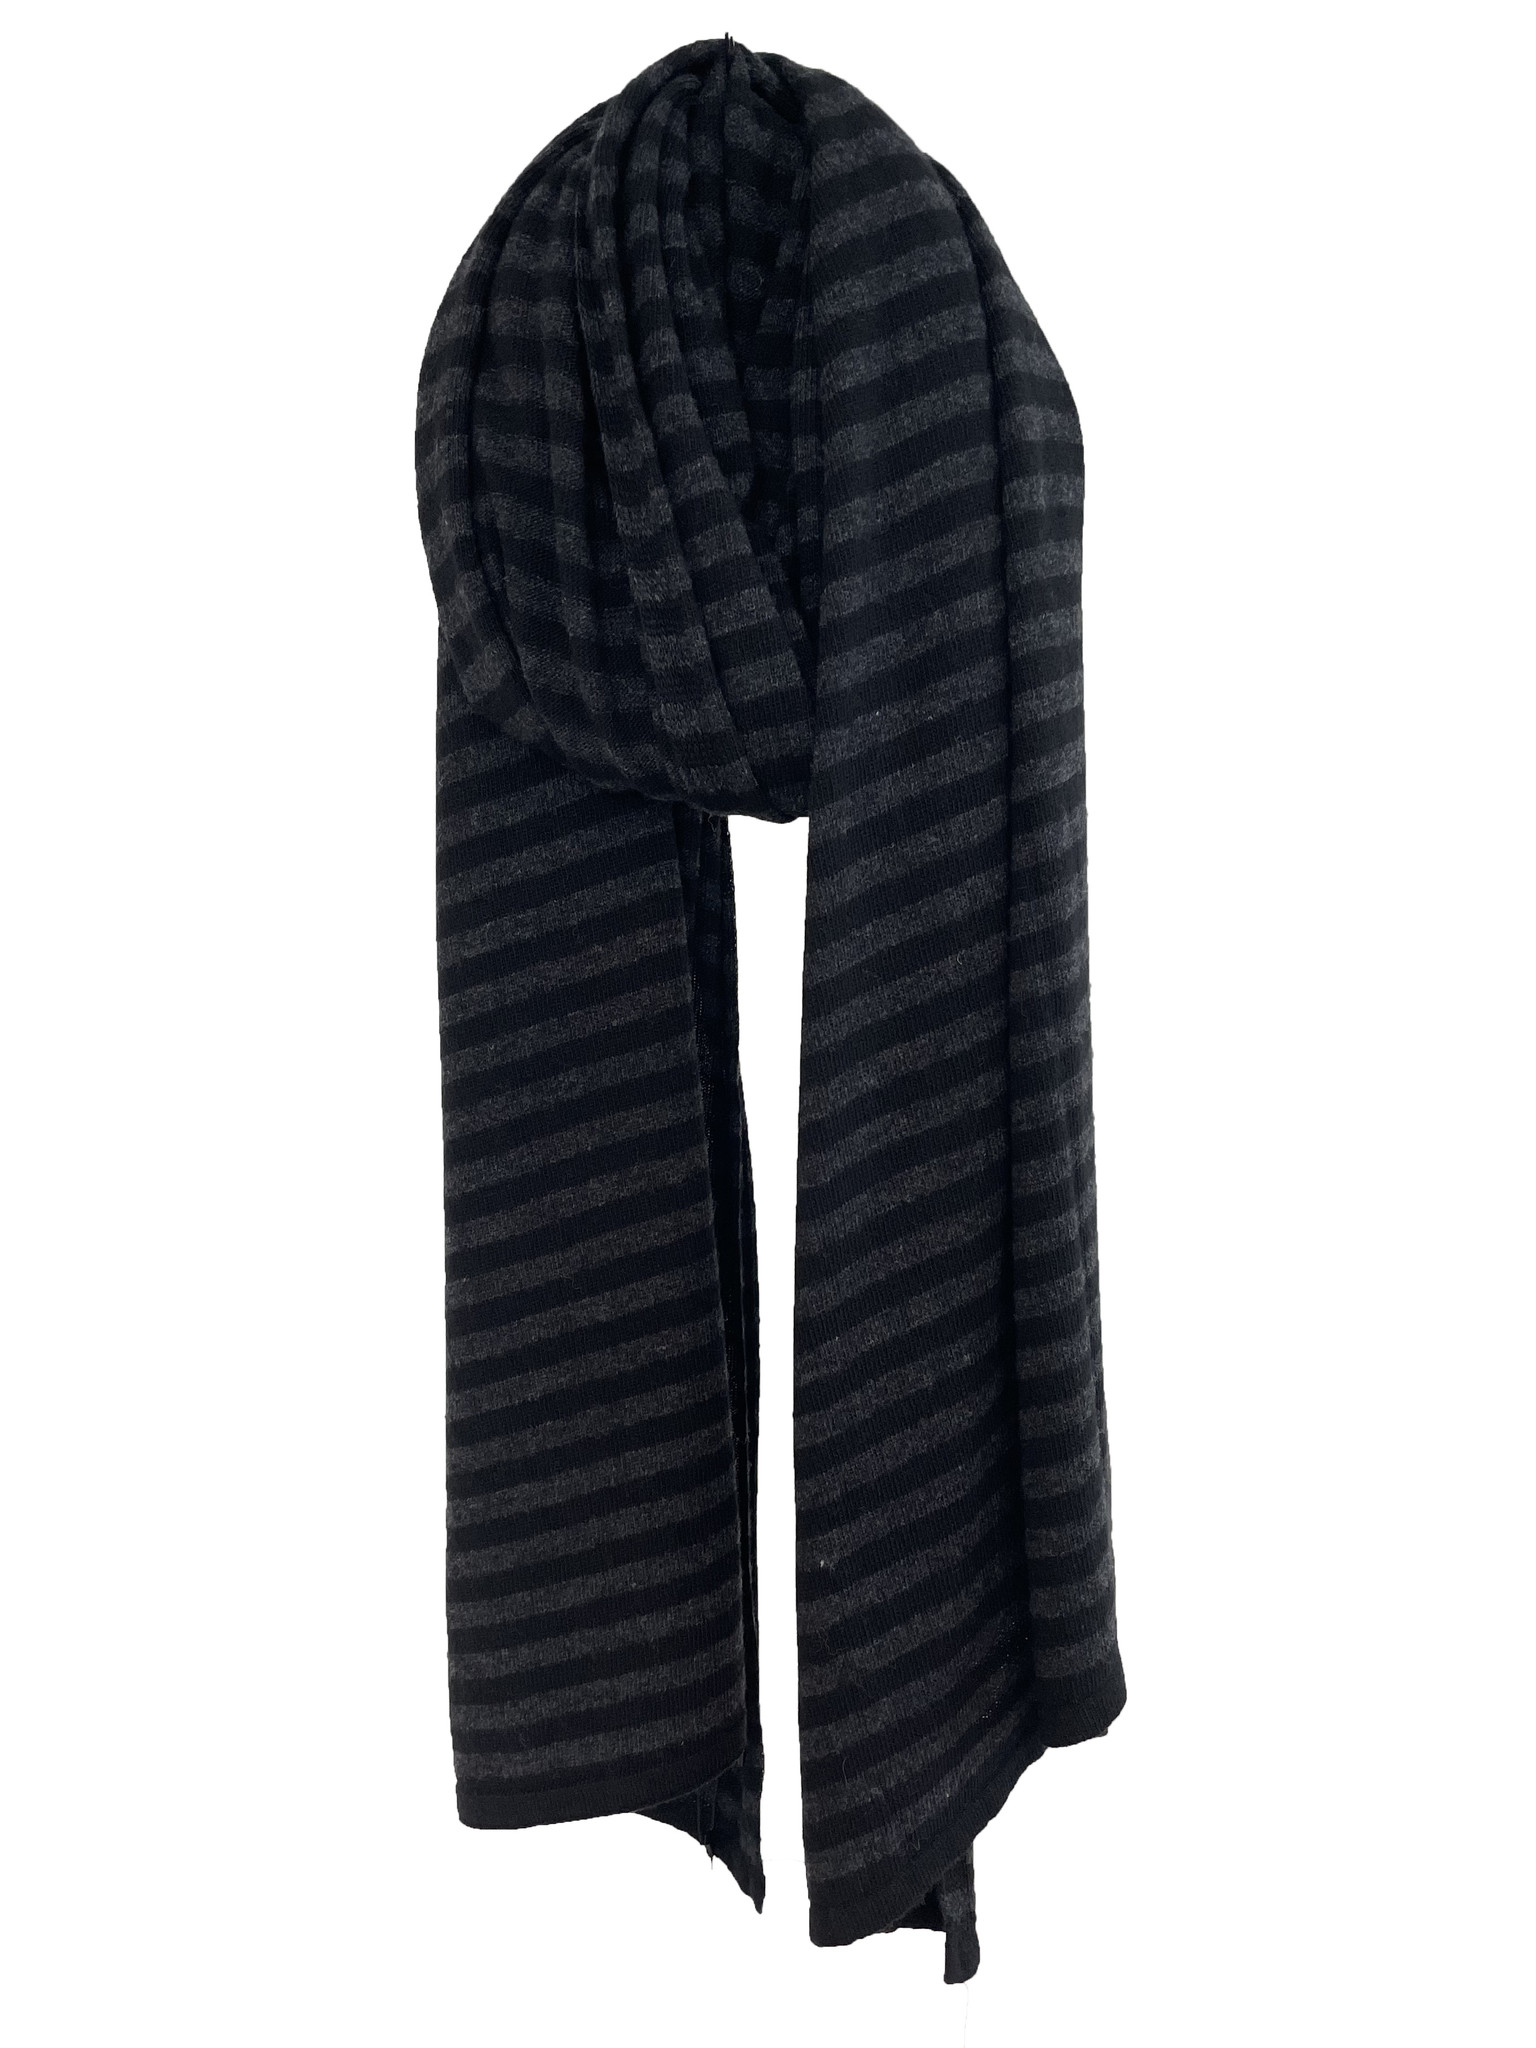 Cosy Chic Stripes Solid Black – Black Melee